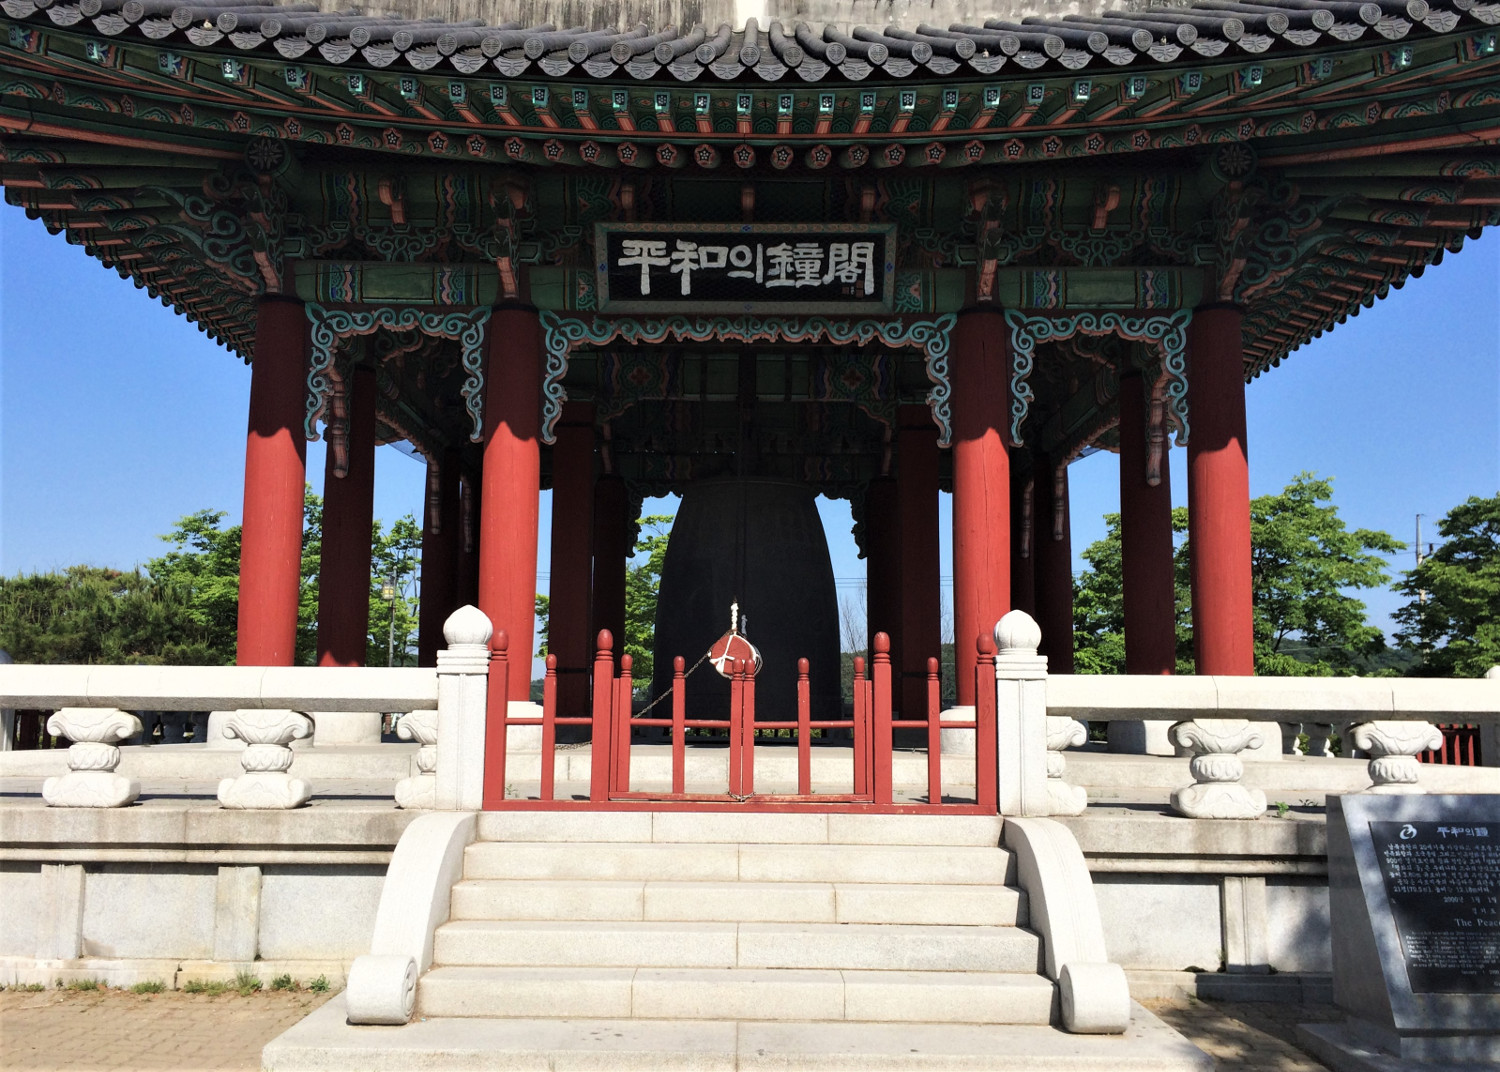 Temple built on the DMZ